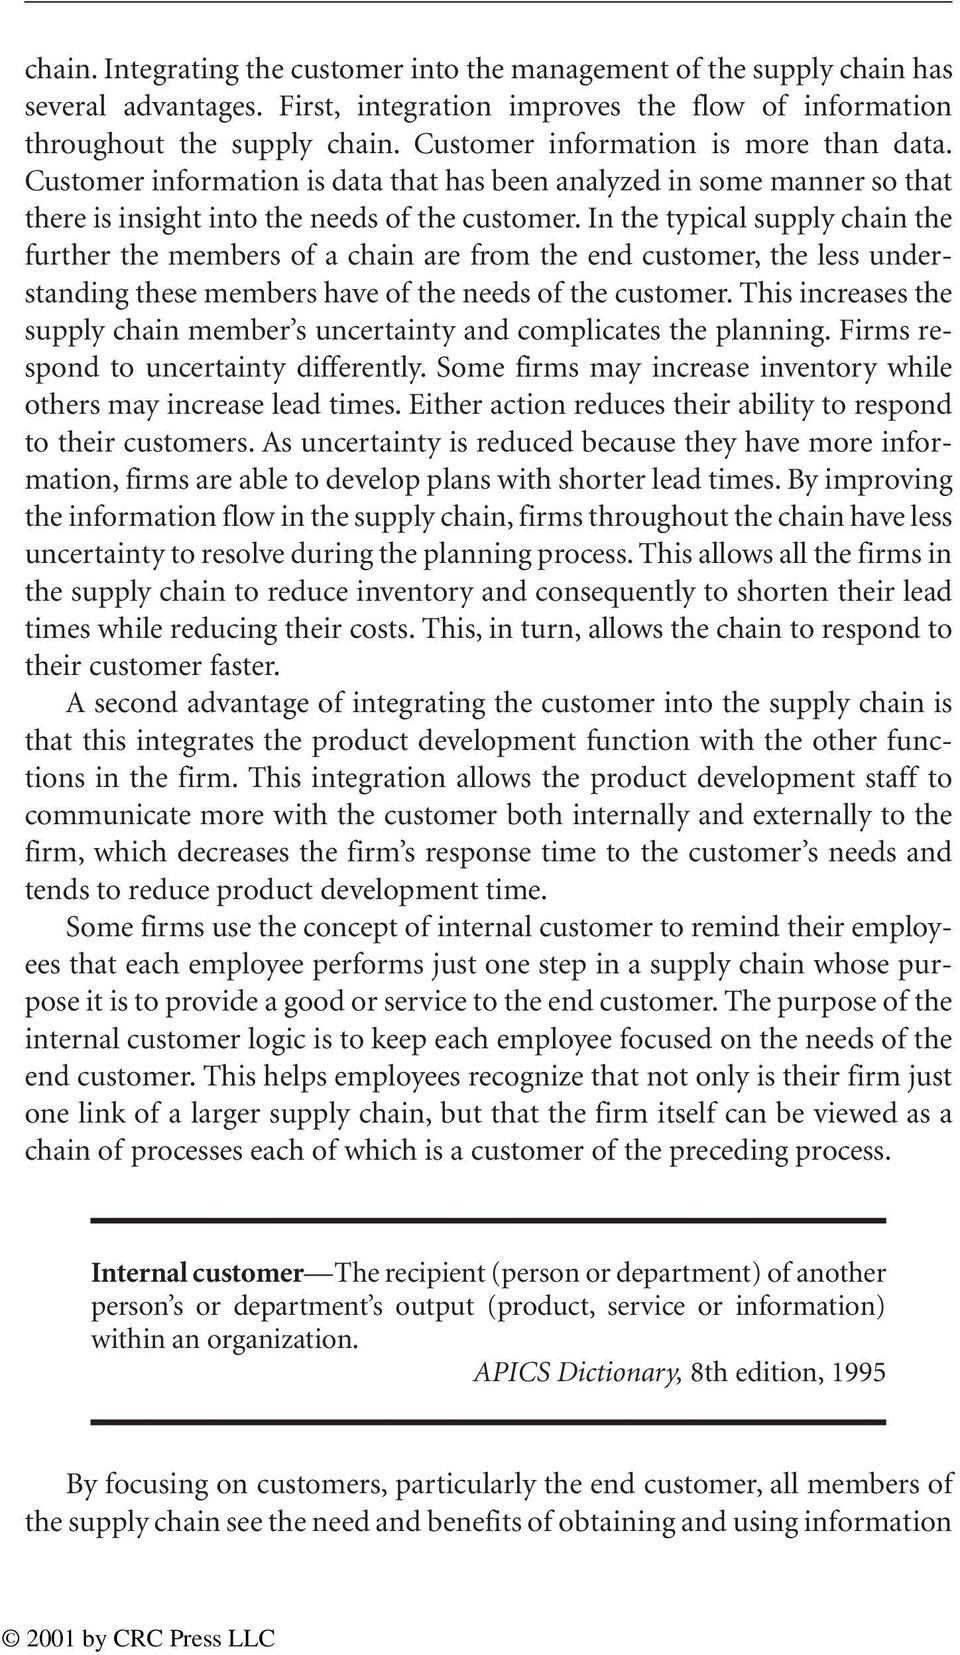 In the typical supply chain the further the members of a chain are from the end customer, the less understanding these members have of the needs of the customer.